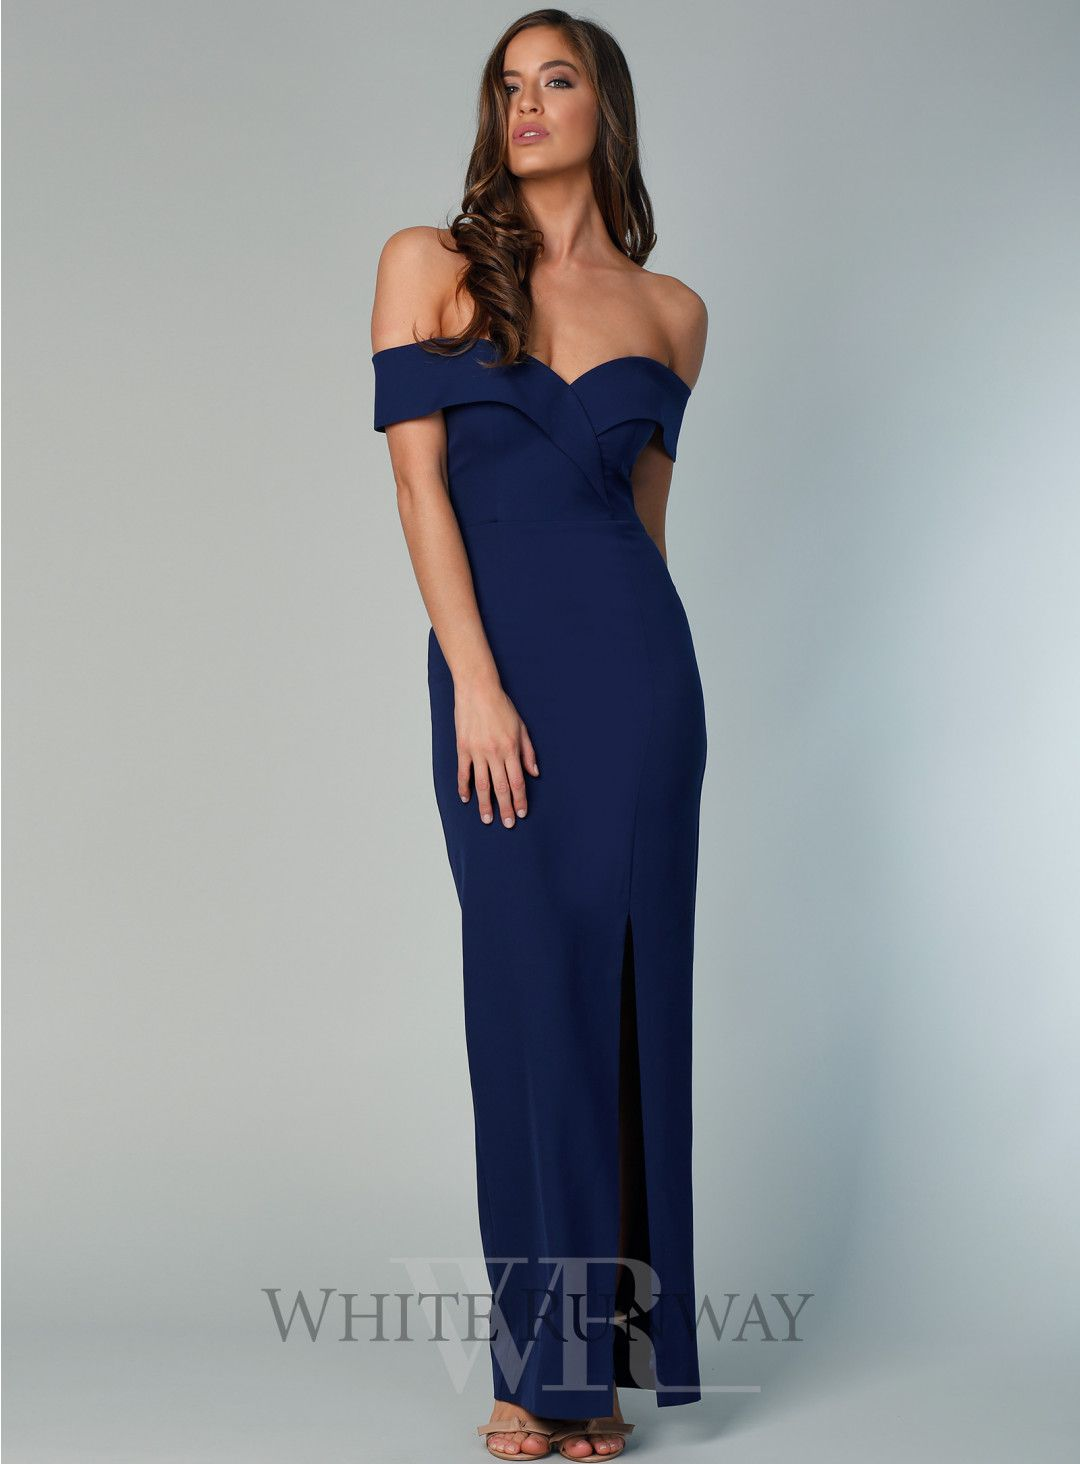 0d3c009e933 Gia Off Shoulder Pencil Dress. A gorgeous full length dress by Samantha Rose.  An off shoulder style with pencil skirt and side leg split.